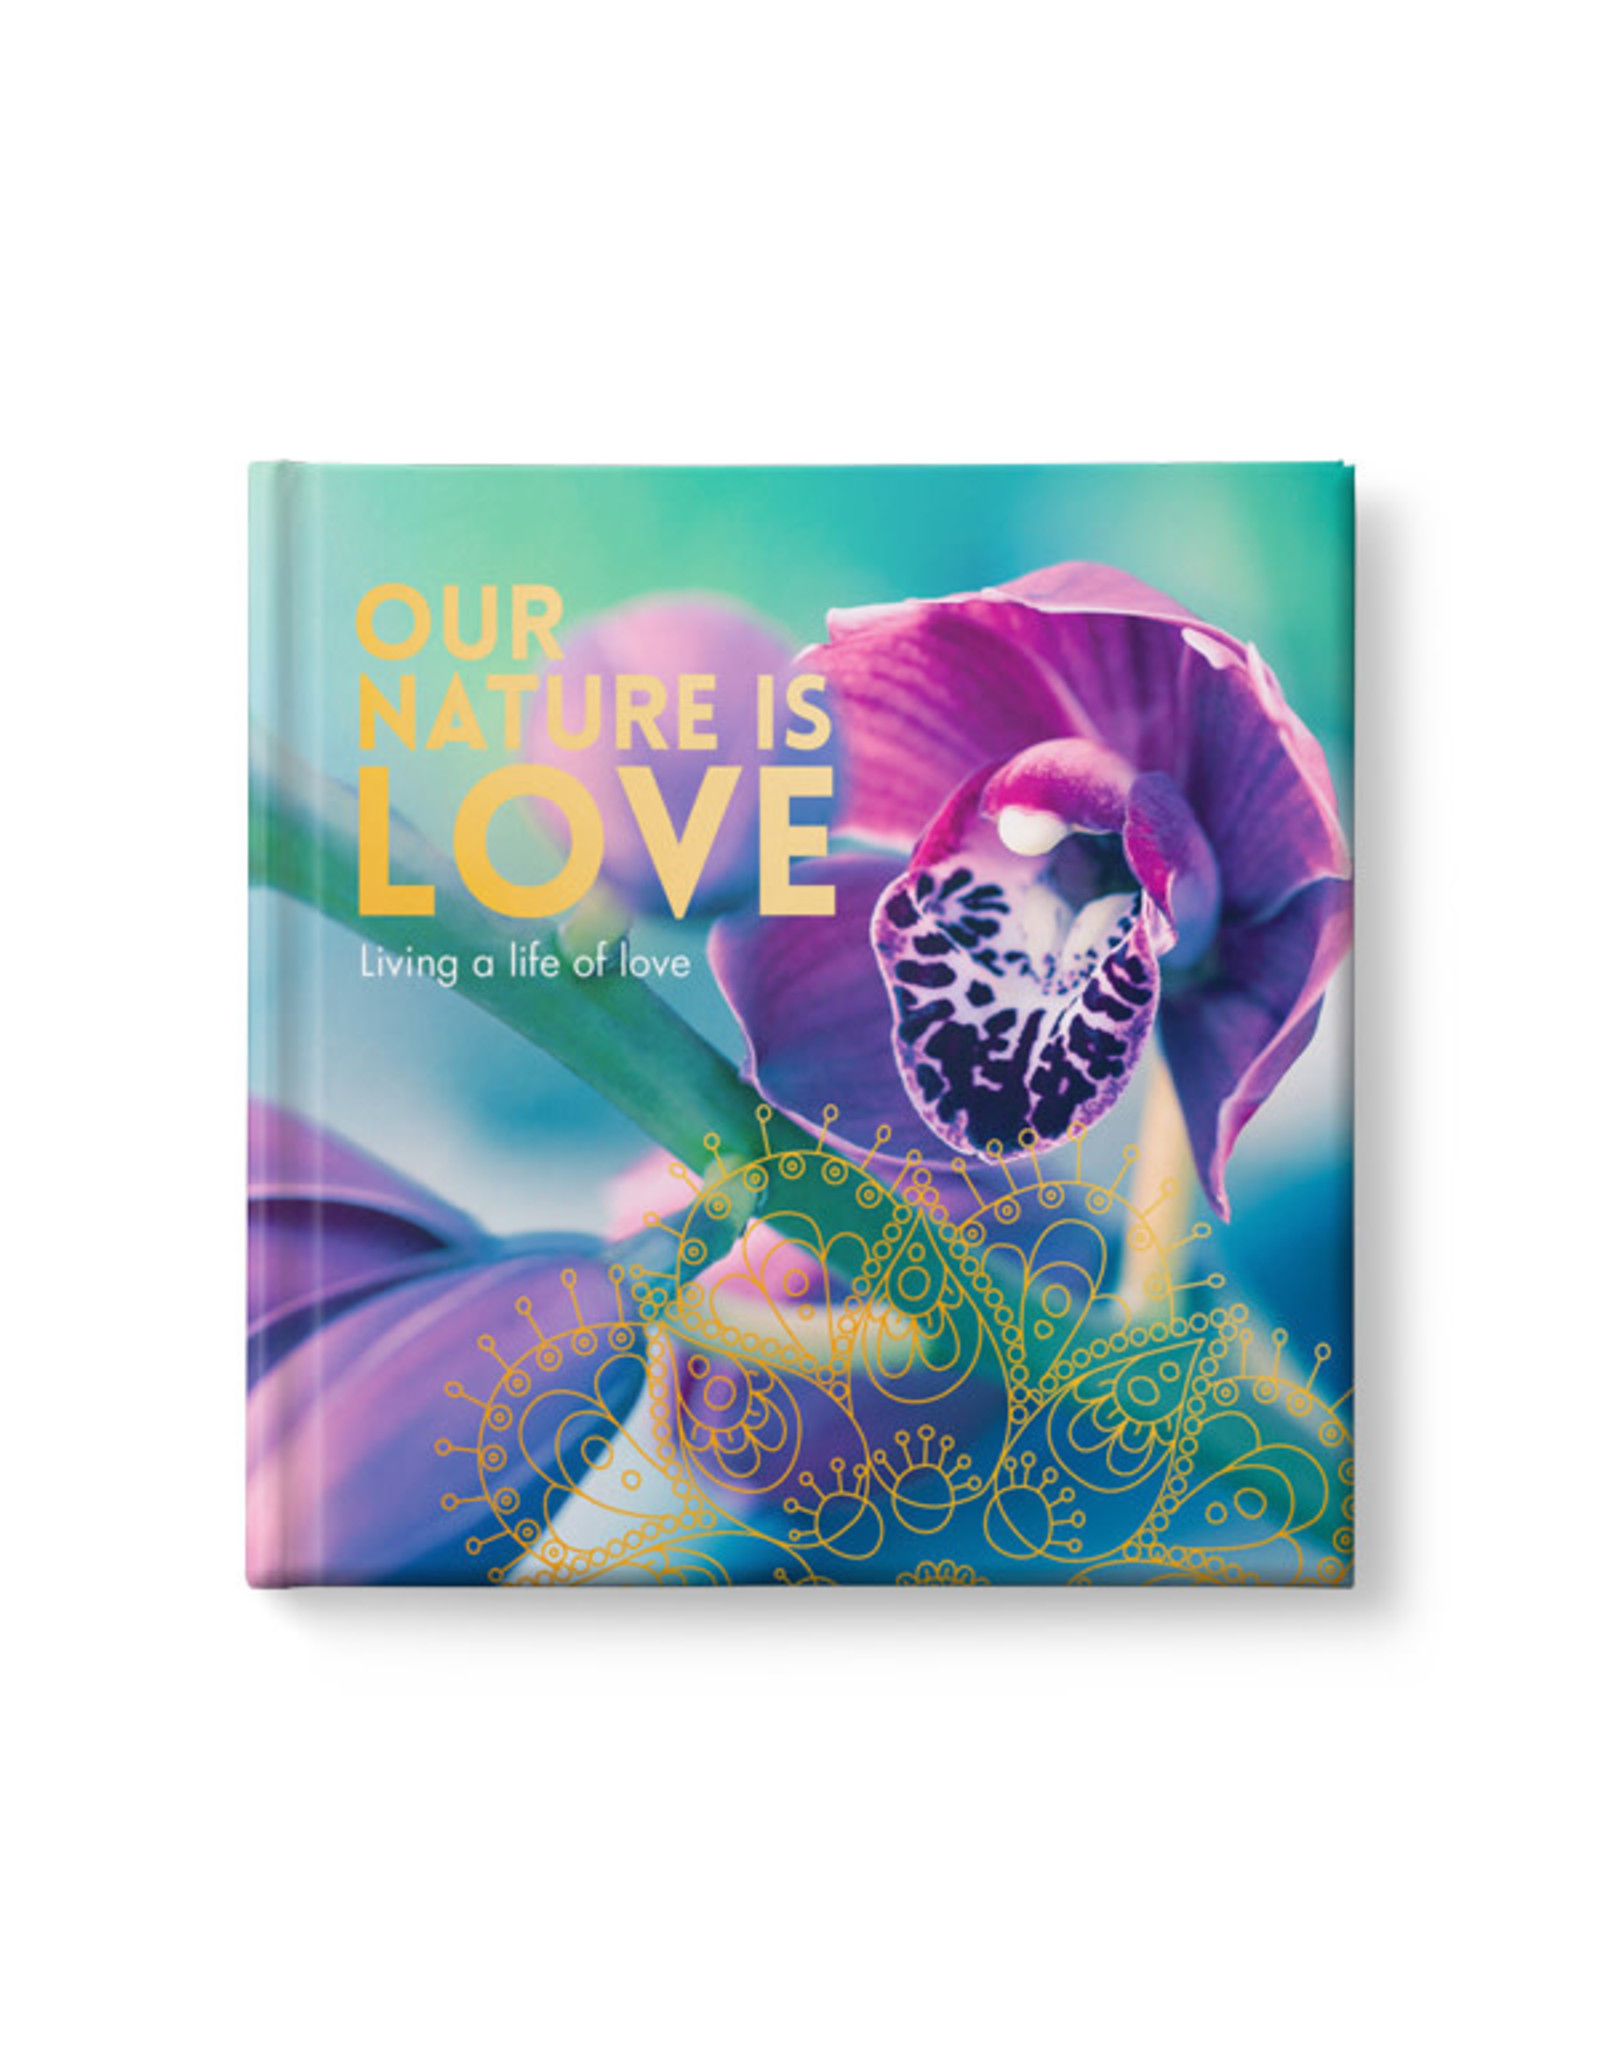 Our Nature is Love - Mindfulness Book